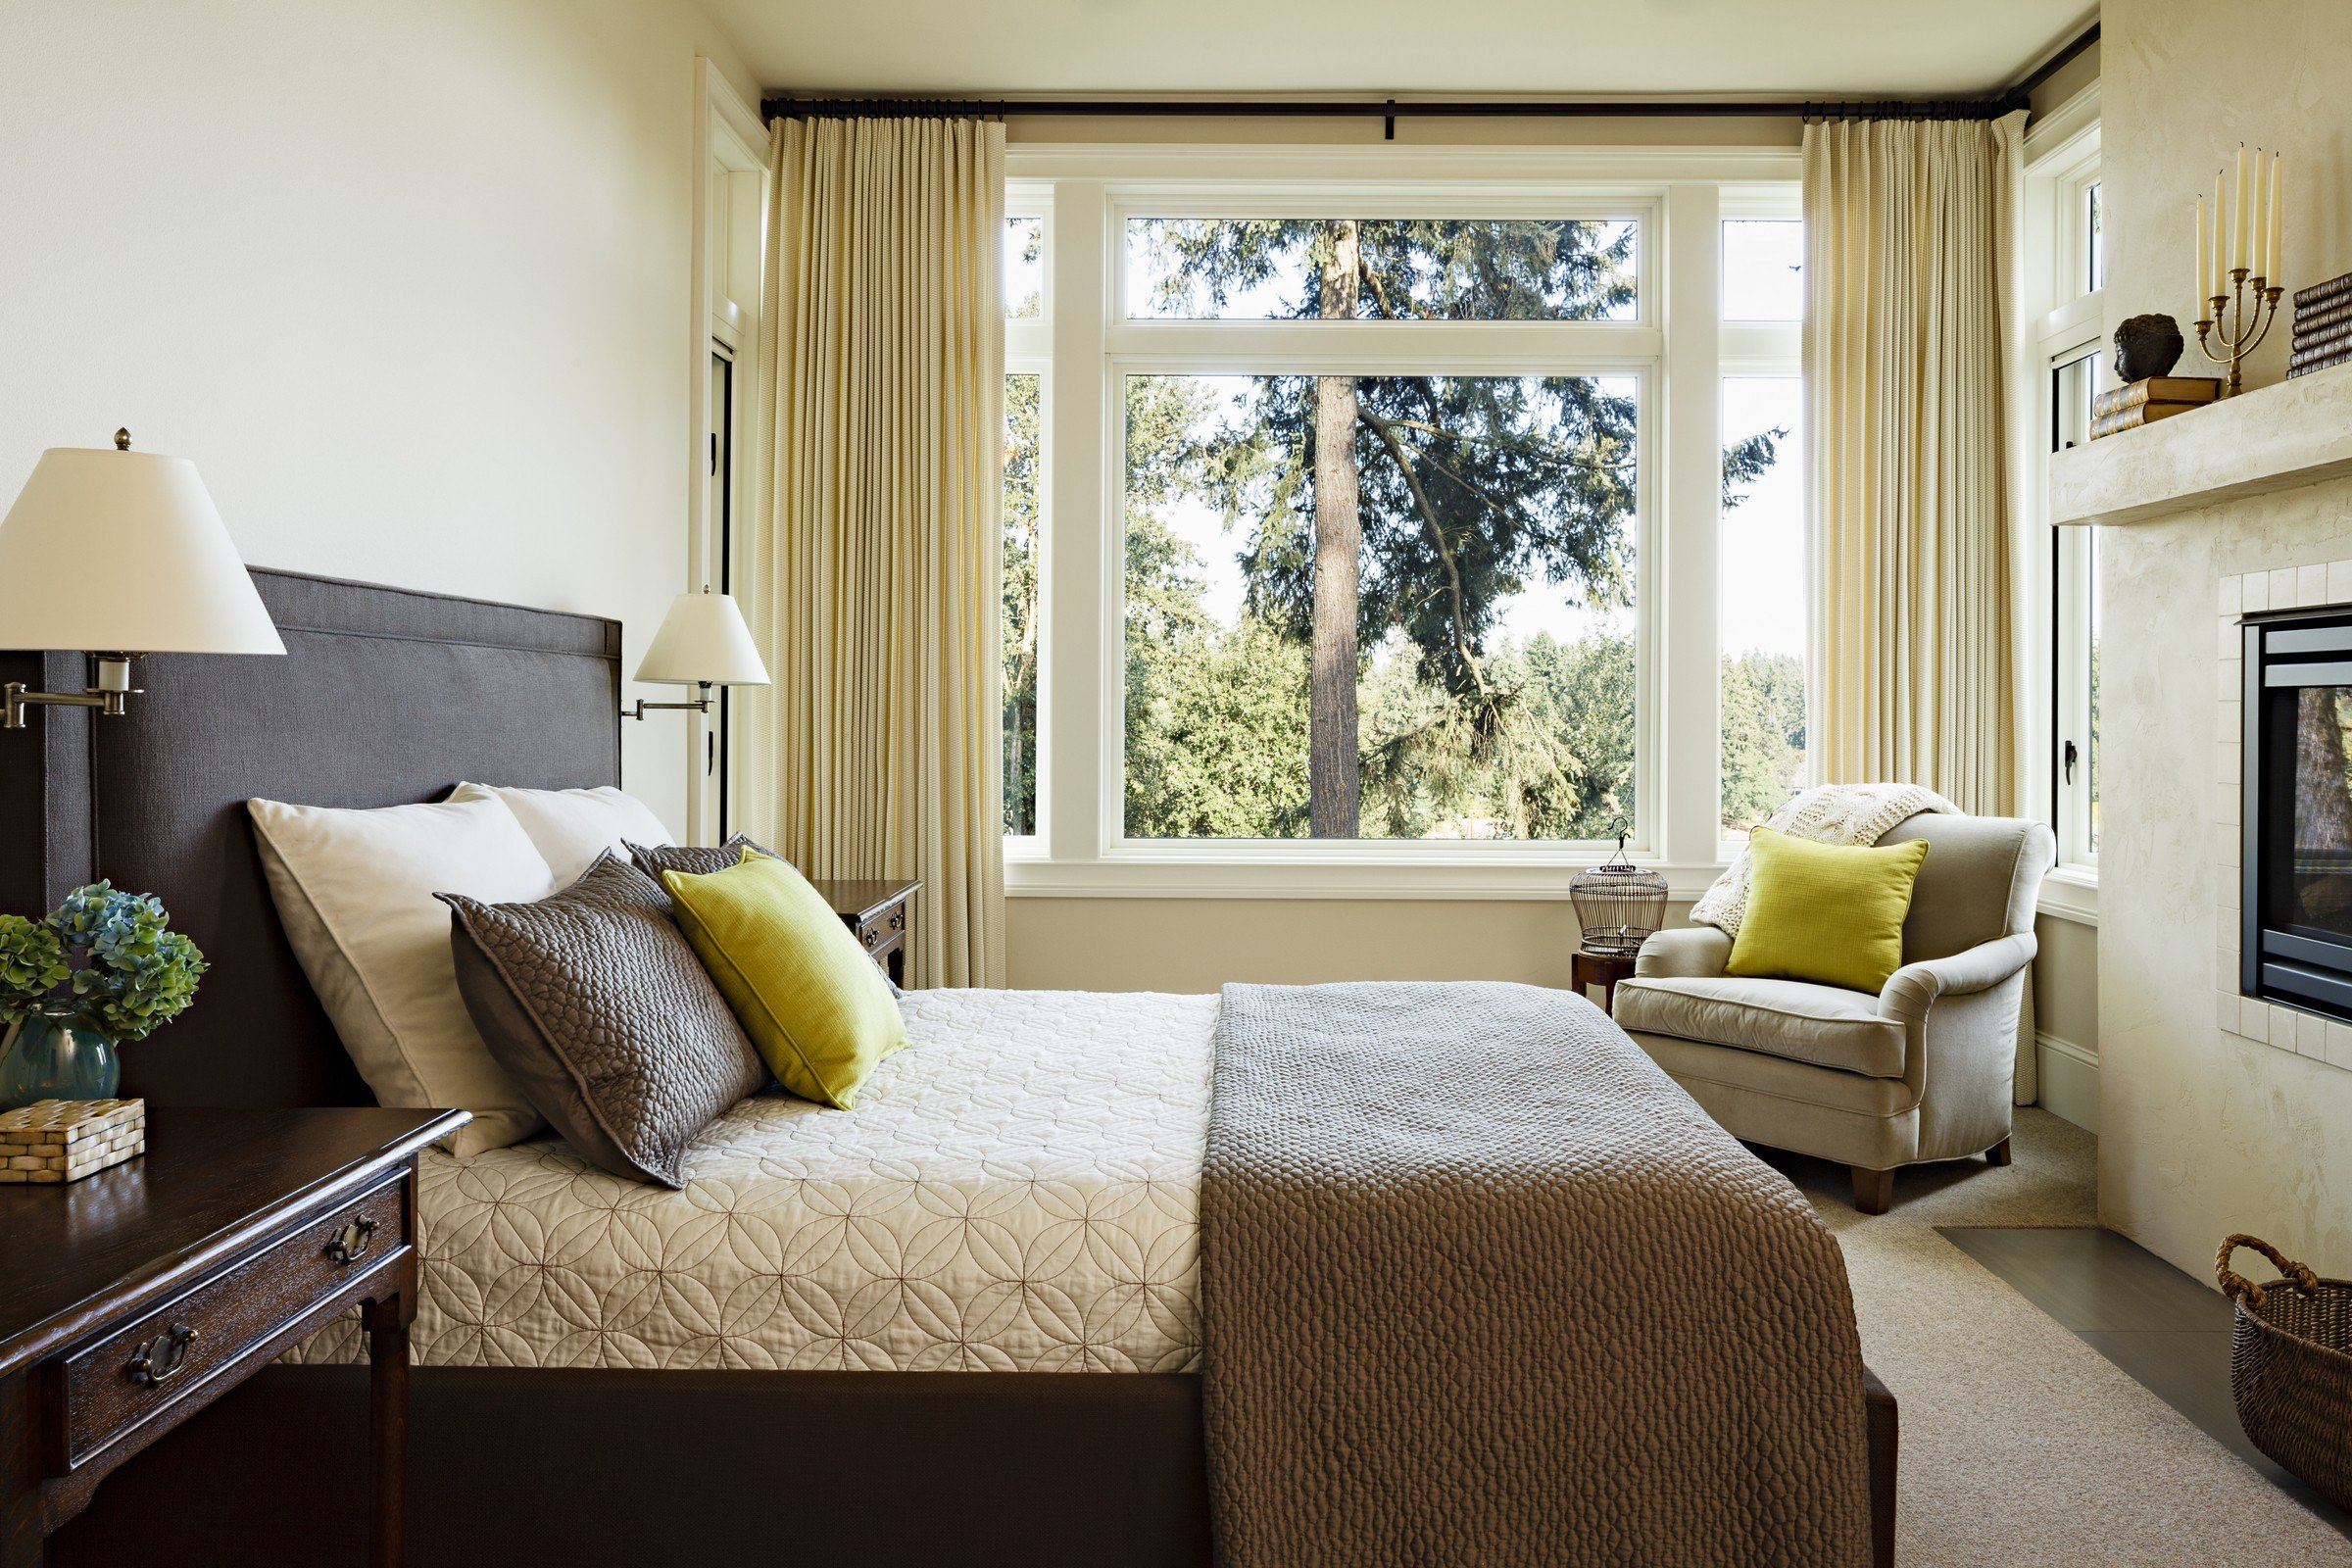 Decor Ideas for Master Bedrooms Best Of 6 Bedrooms with Fireplaces We Would Love to Wake Up to